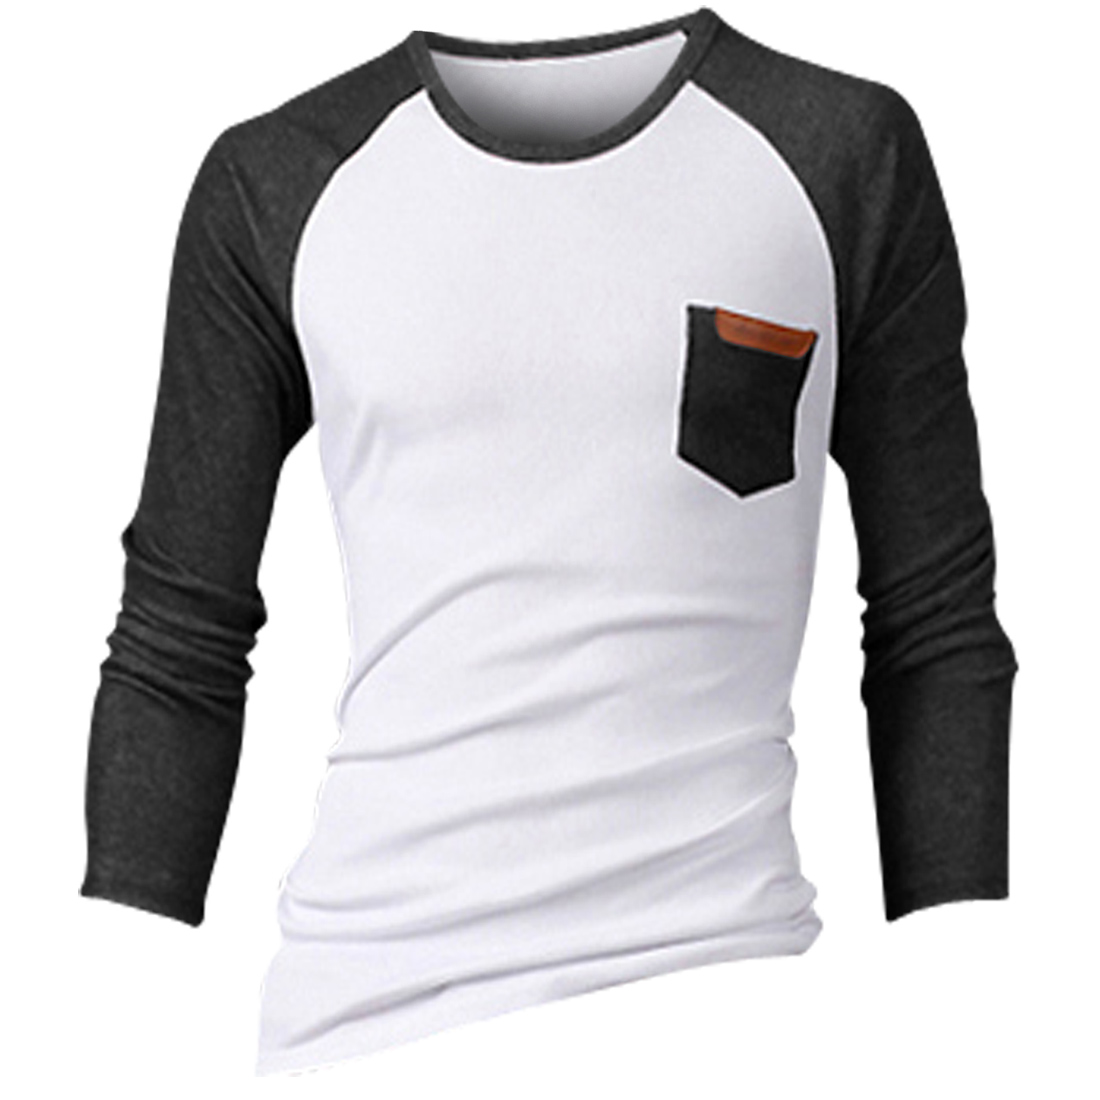 Men Round Neck Raglan Sleeve Pocket Design Chic T-shirt Dark Gray White M